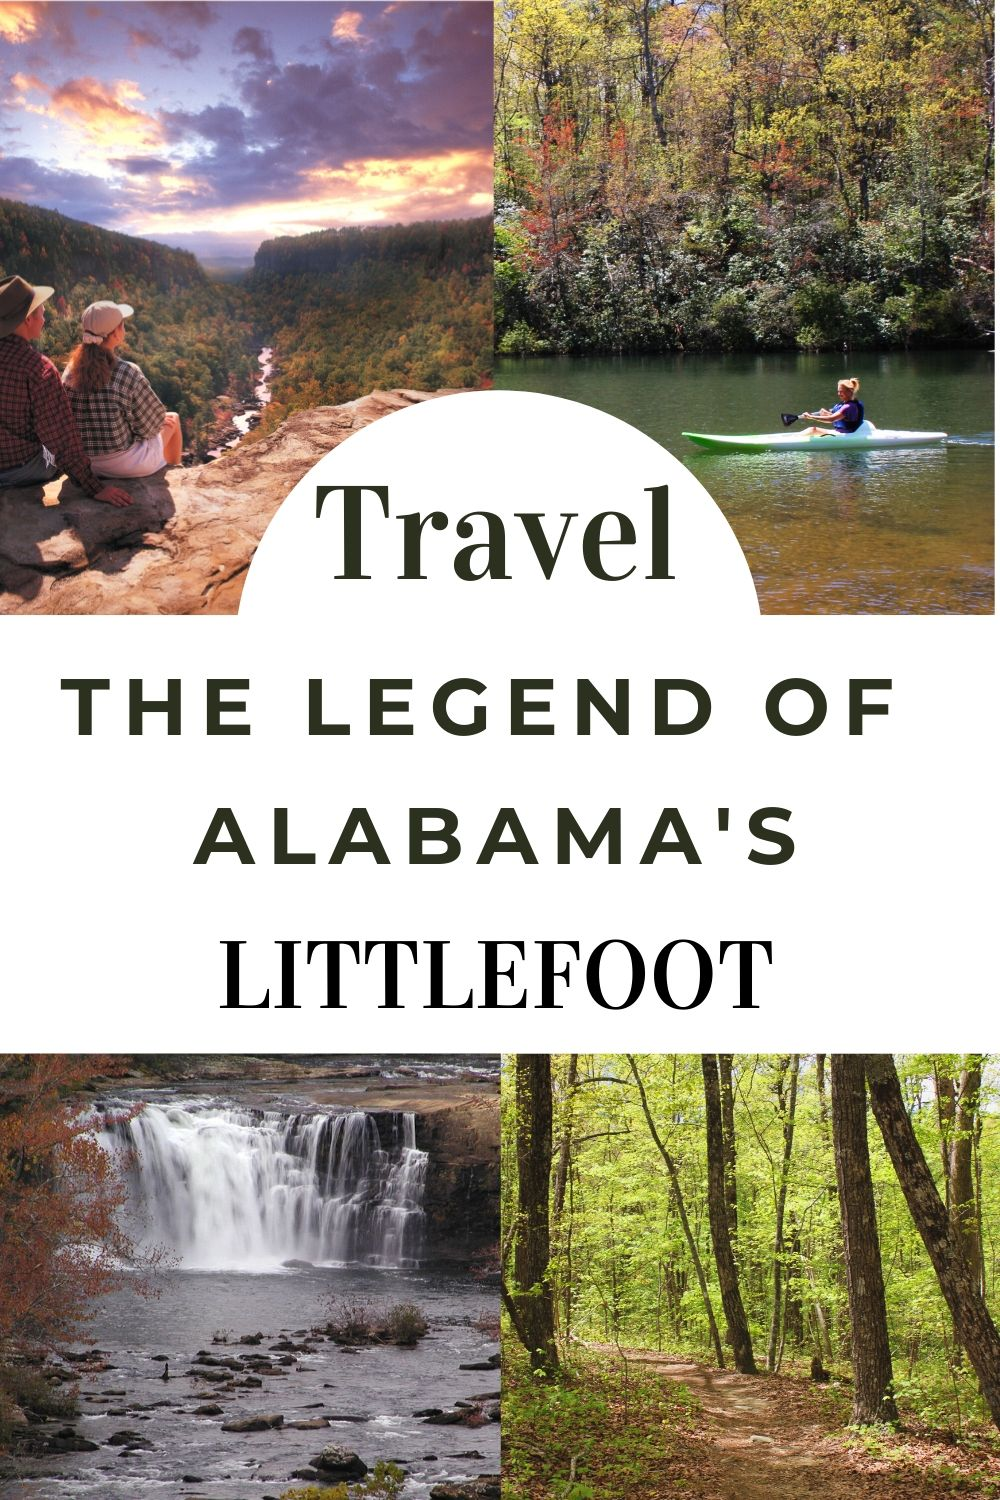 alabama's littlefoot